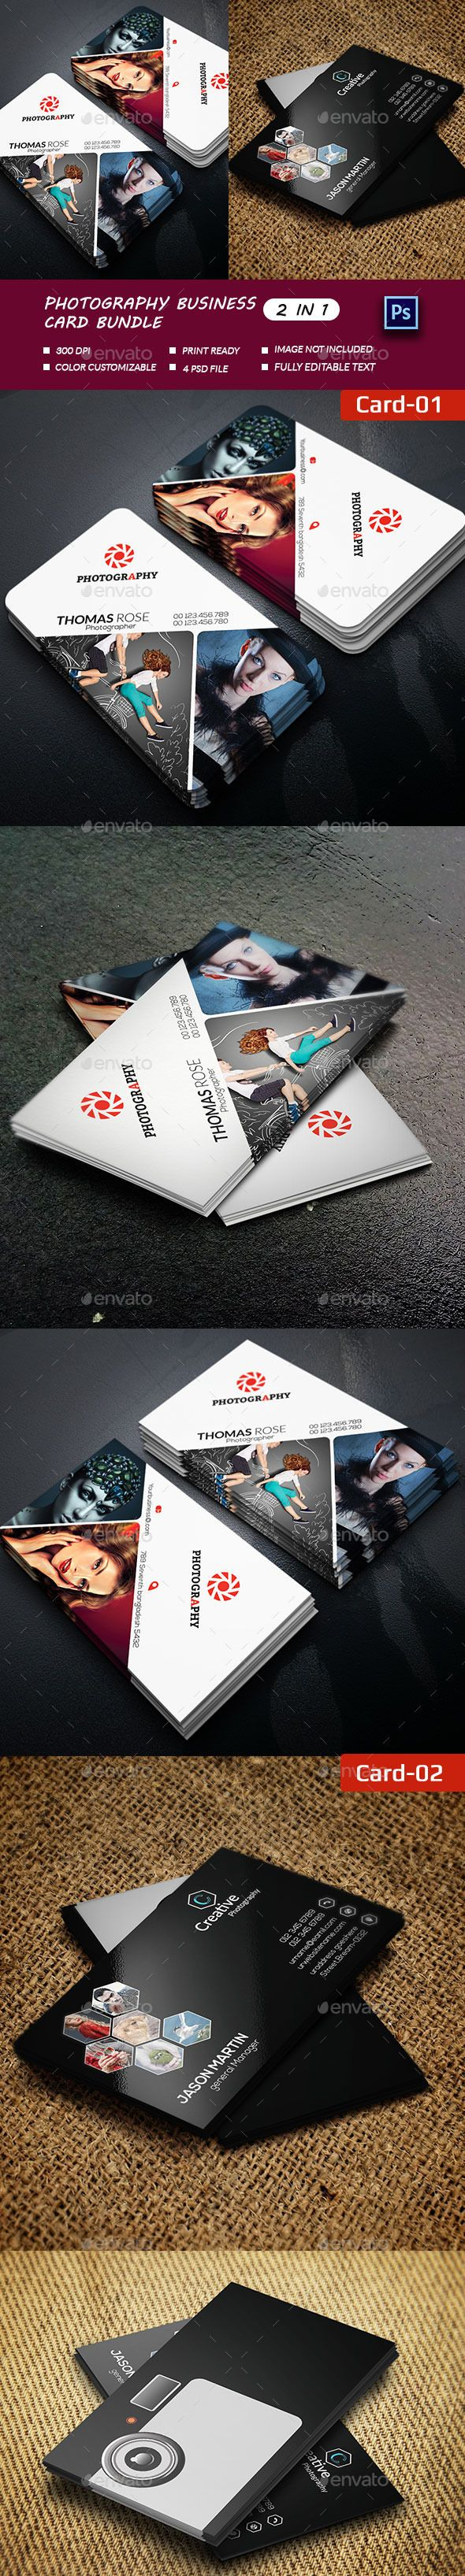 263 best business card images on Pinterest